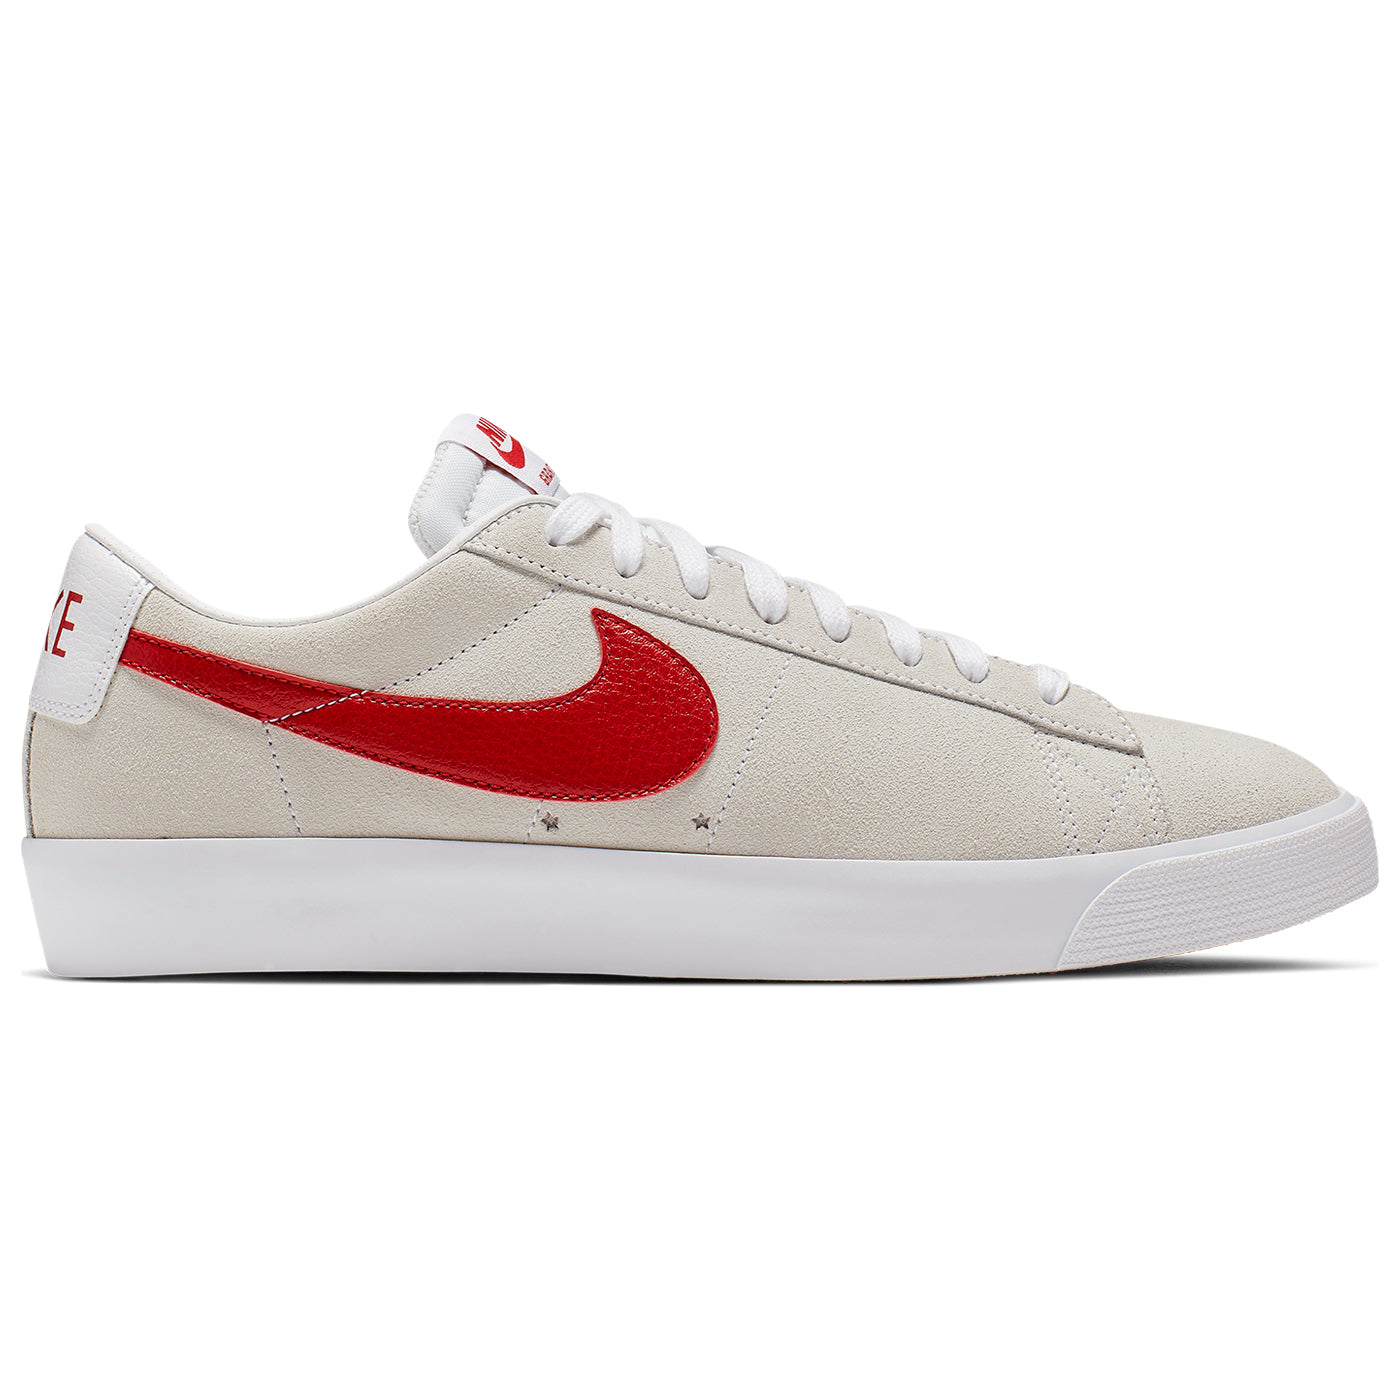 check out 39776 6355c Blazer Low Grant Taylor Shoes in White / University Red by ...